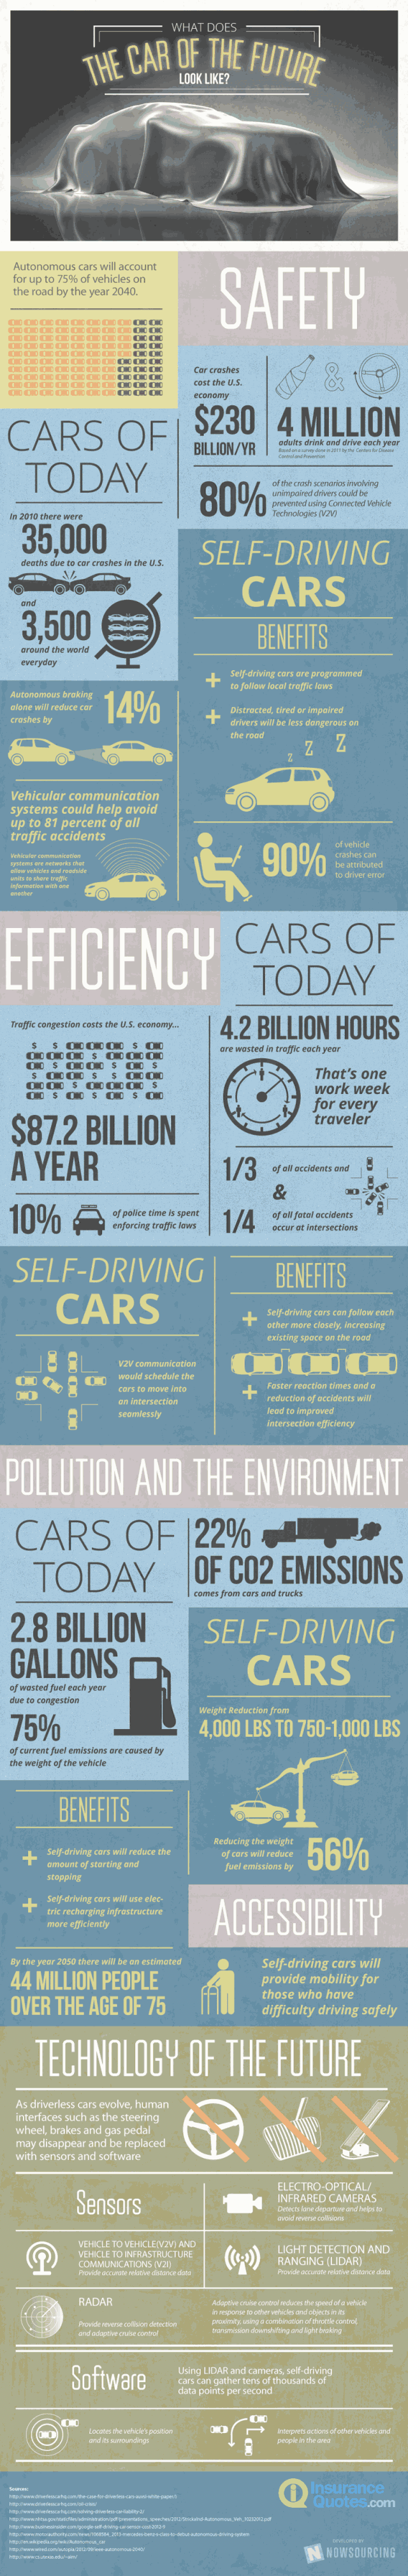 Car of the Future Infographic